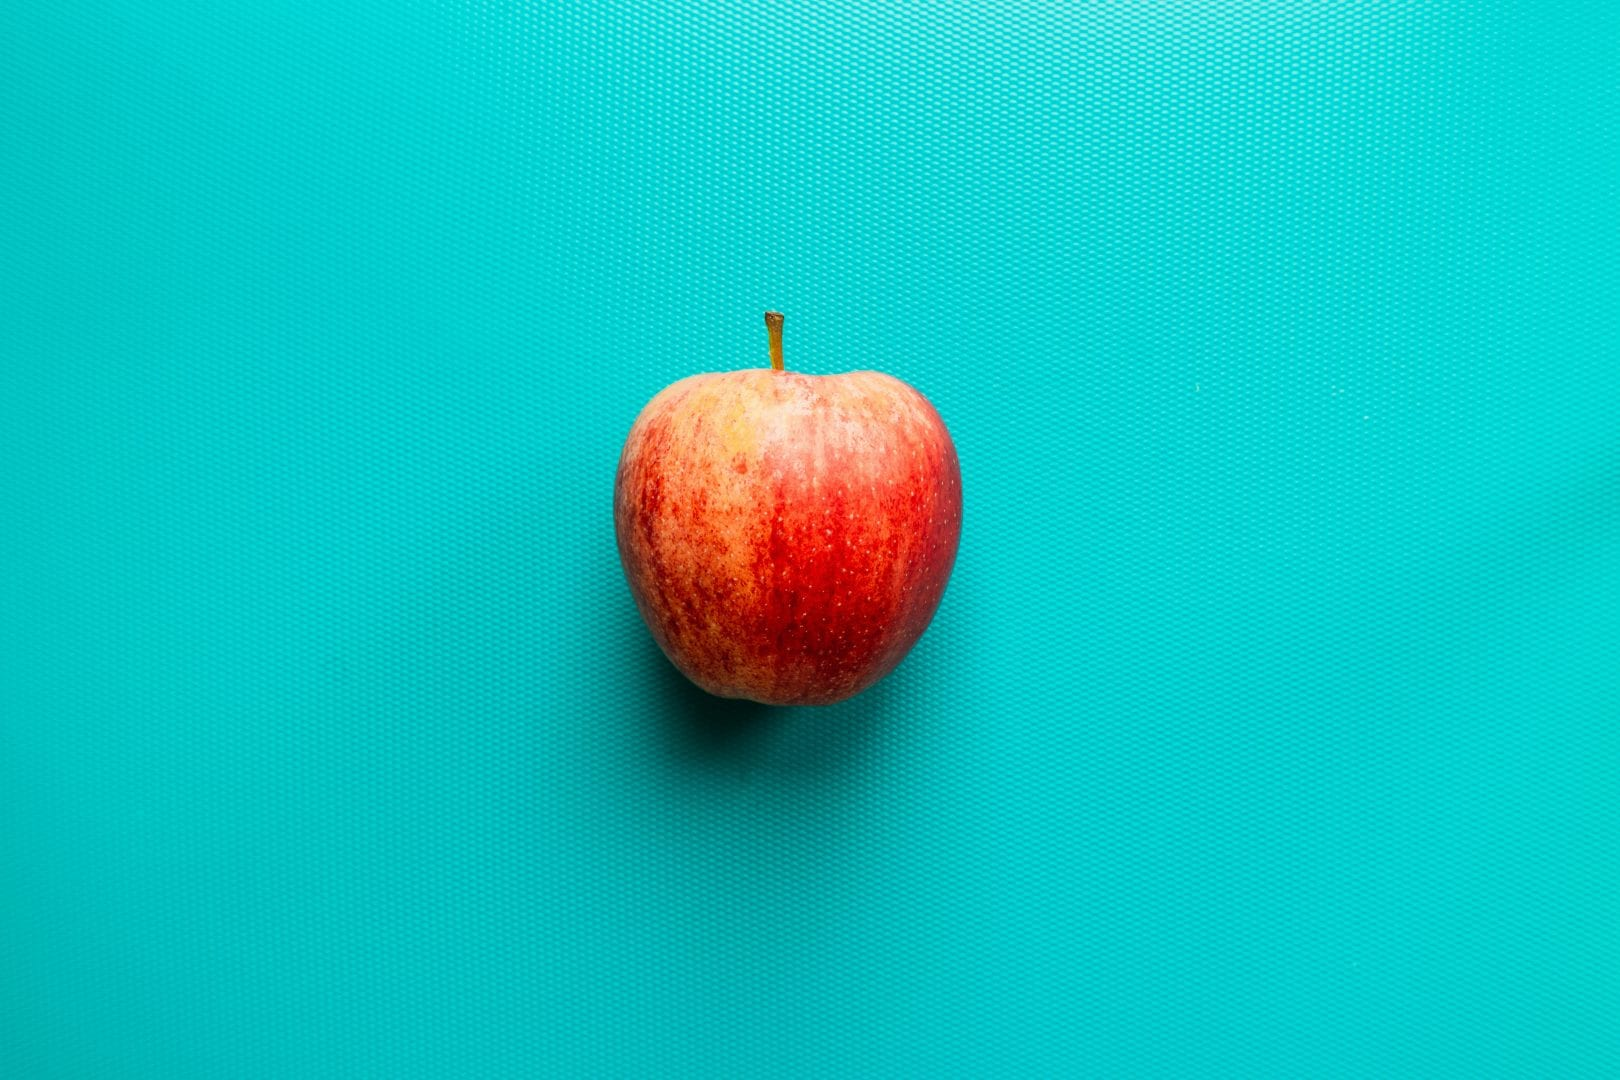 a red apple laying on a bright teal background